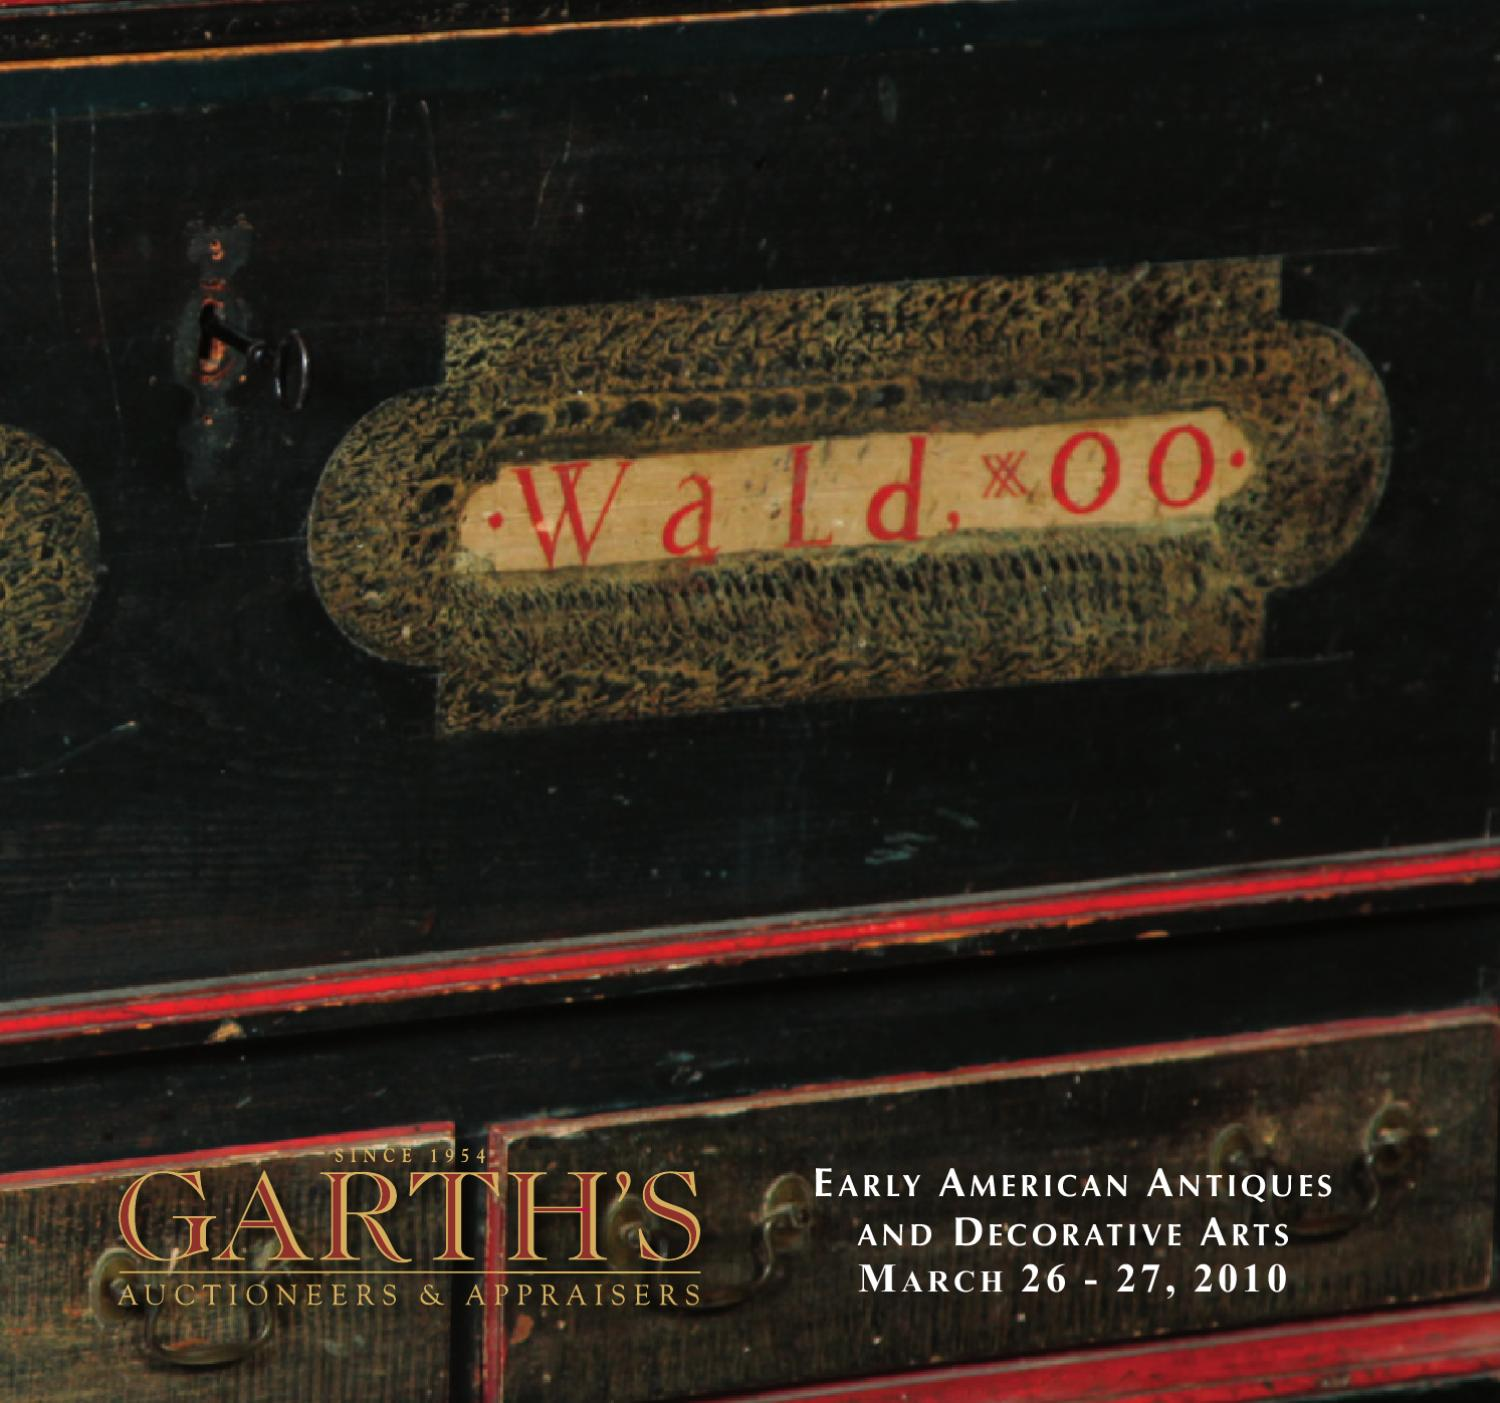 Garth s Auctions March 2010 Early American Antiques & Decorative